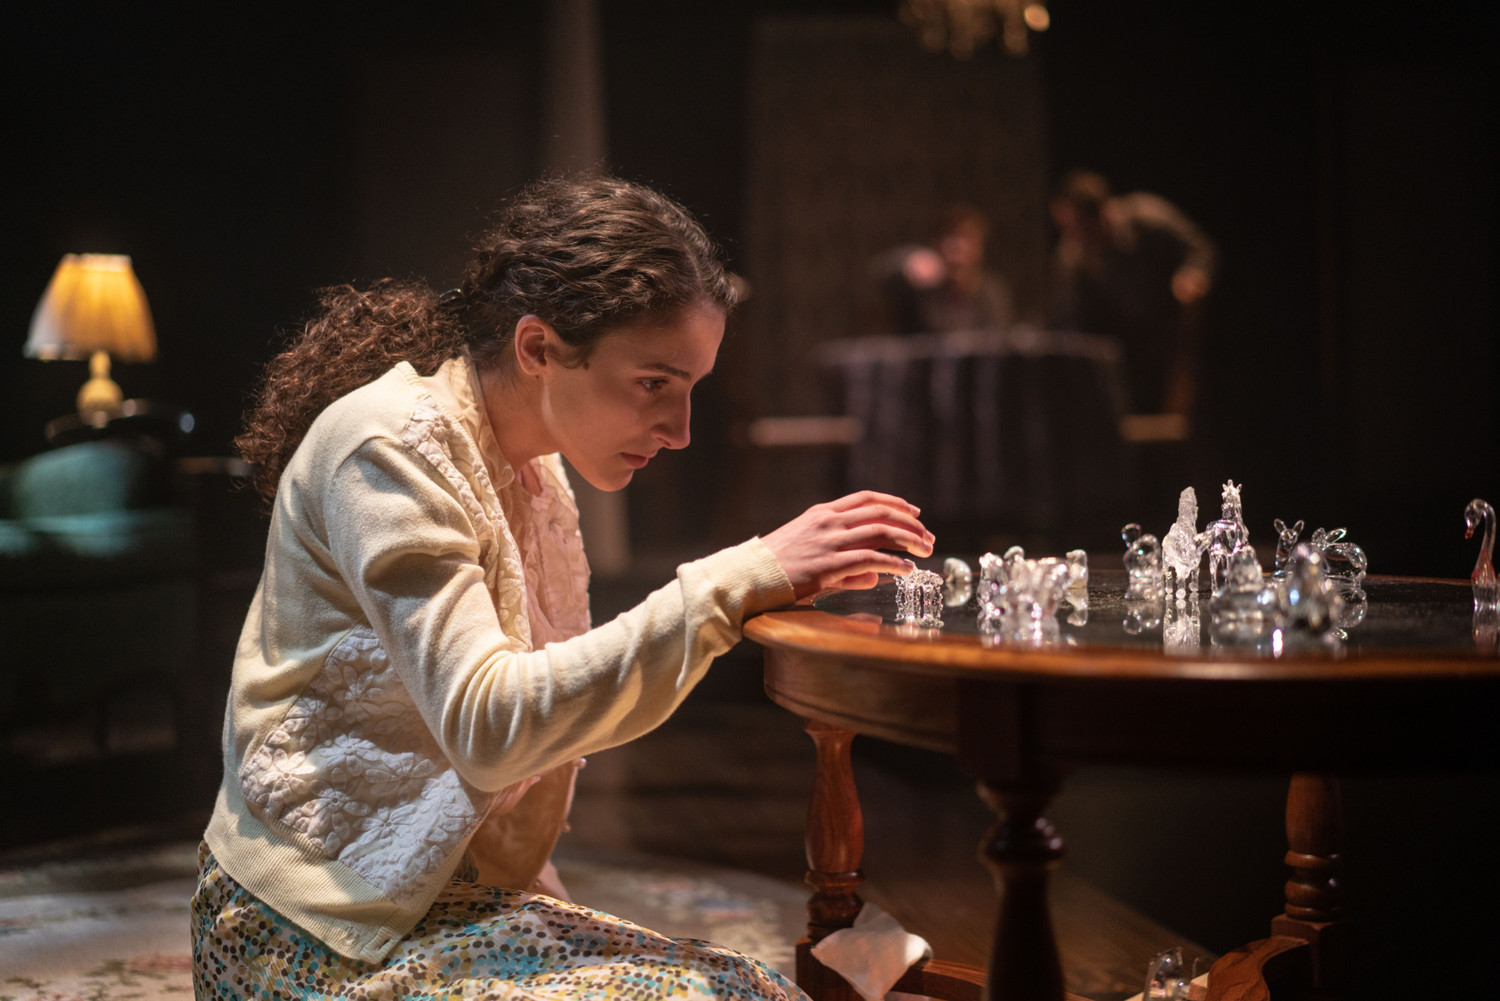 BWW Review: THE GLASS MENAGERIE at Fulton Theatre